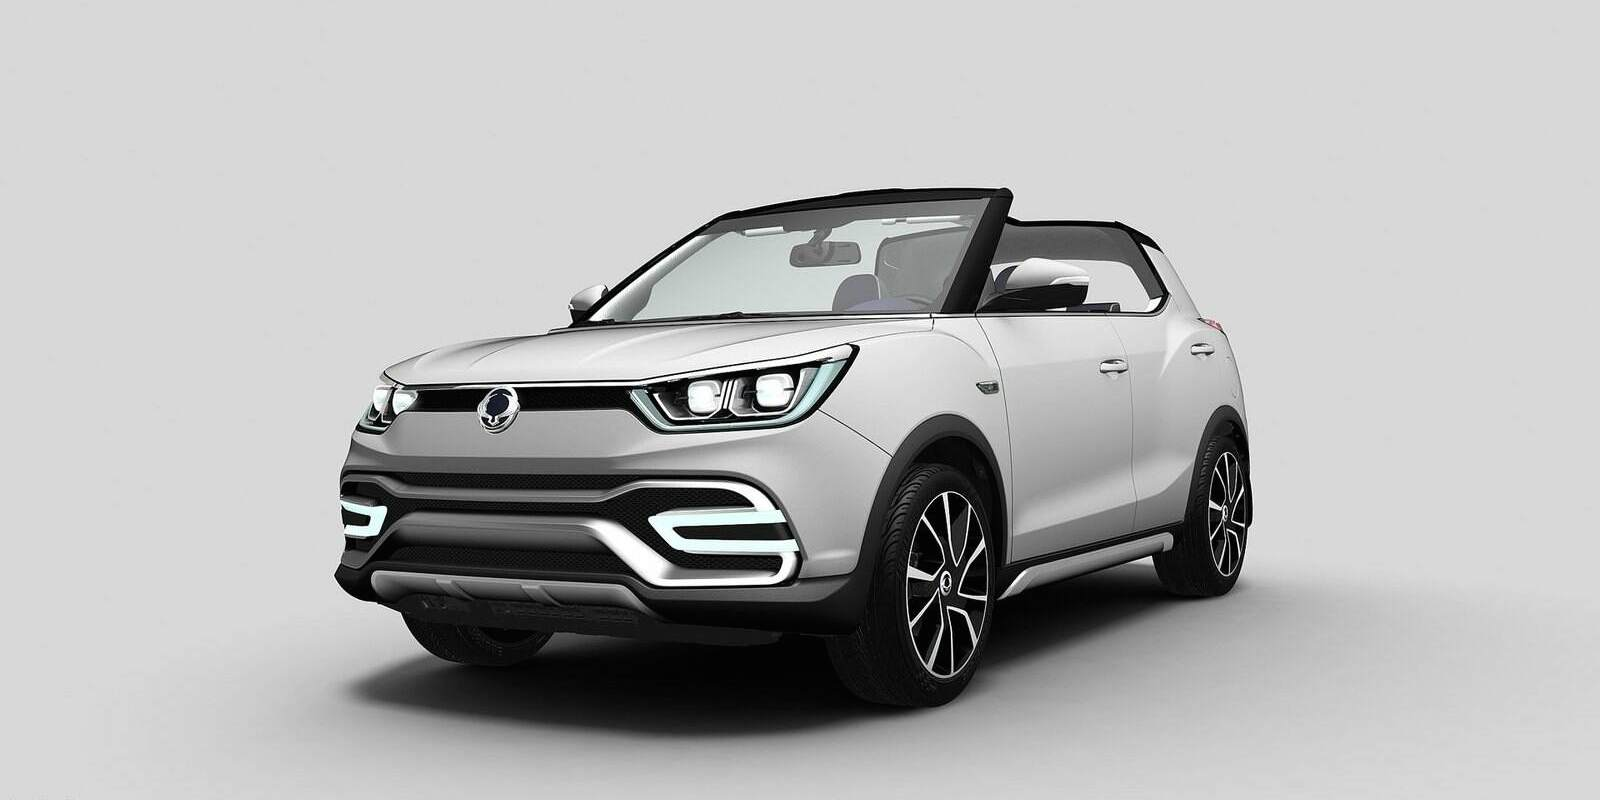 2019 SsangYong XIV Adventure Concept photo - 5